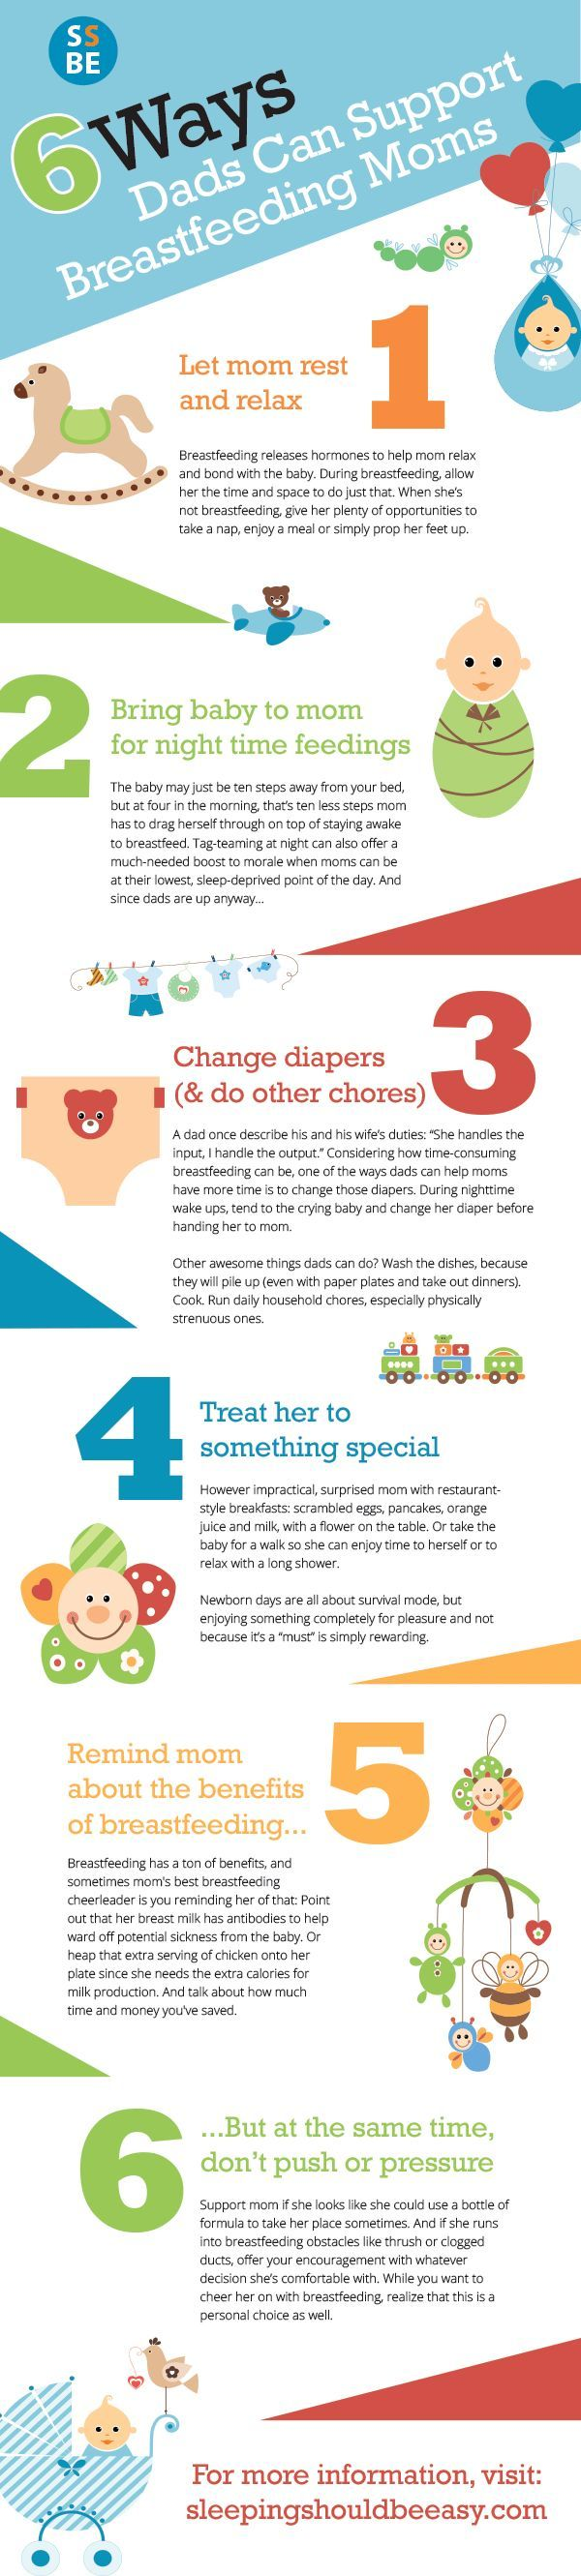 Click Here to Learn 6 Ways Dads Can Support #Breastfeeding Moms: http://sleepingshouldbeeasy.com/2014/01/19/dads-support-breastfeeding-moms